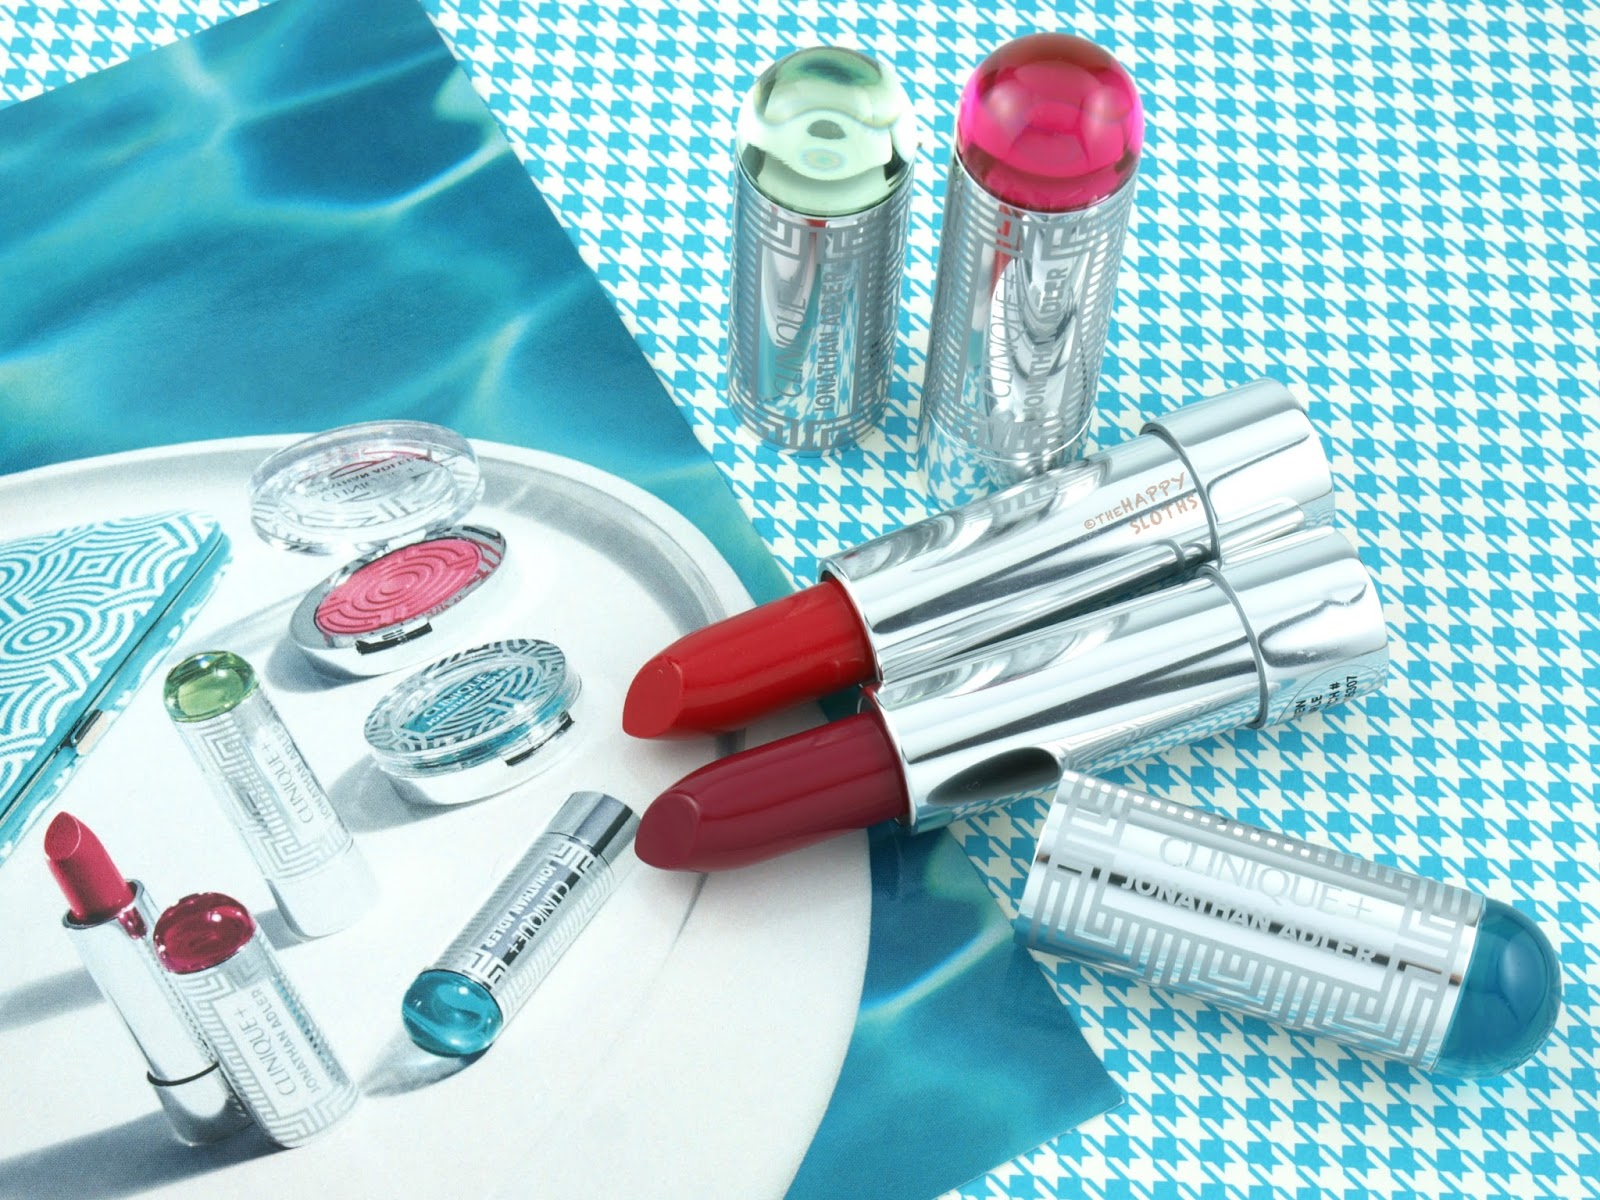 Clinique + Jonathan Adler Collection | Lip Color + Primer Lipstick: Review and Swatches